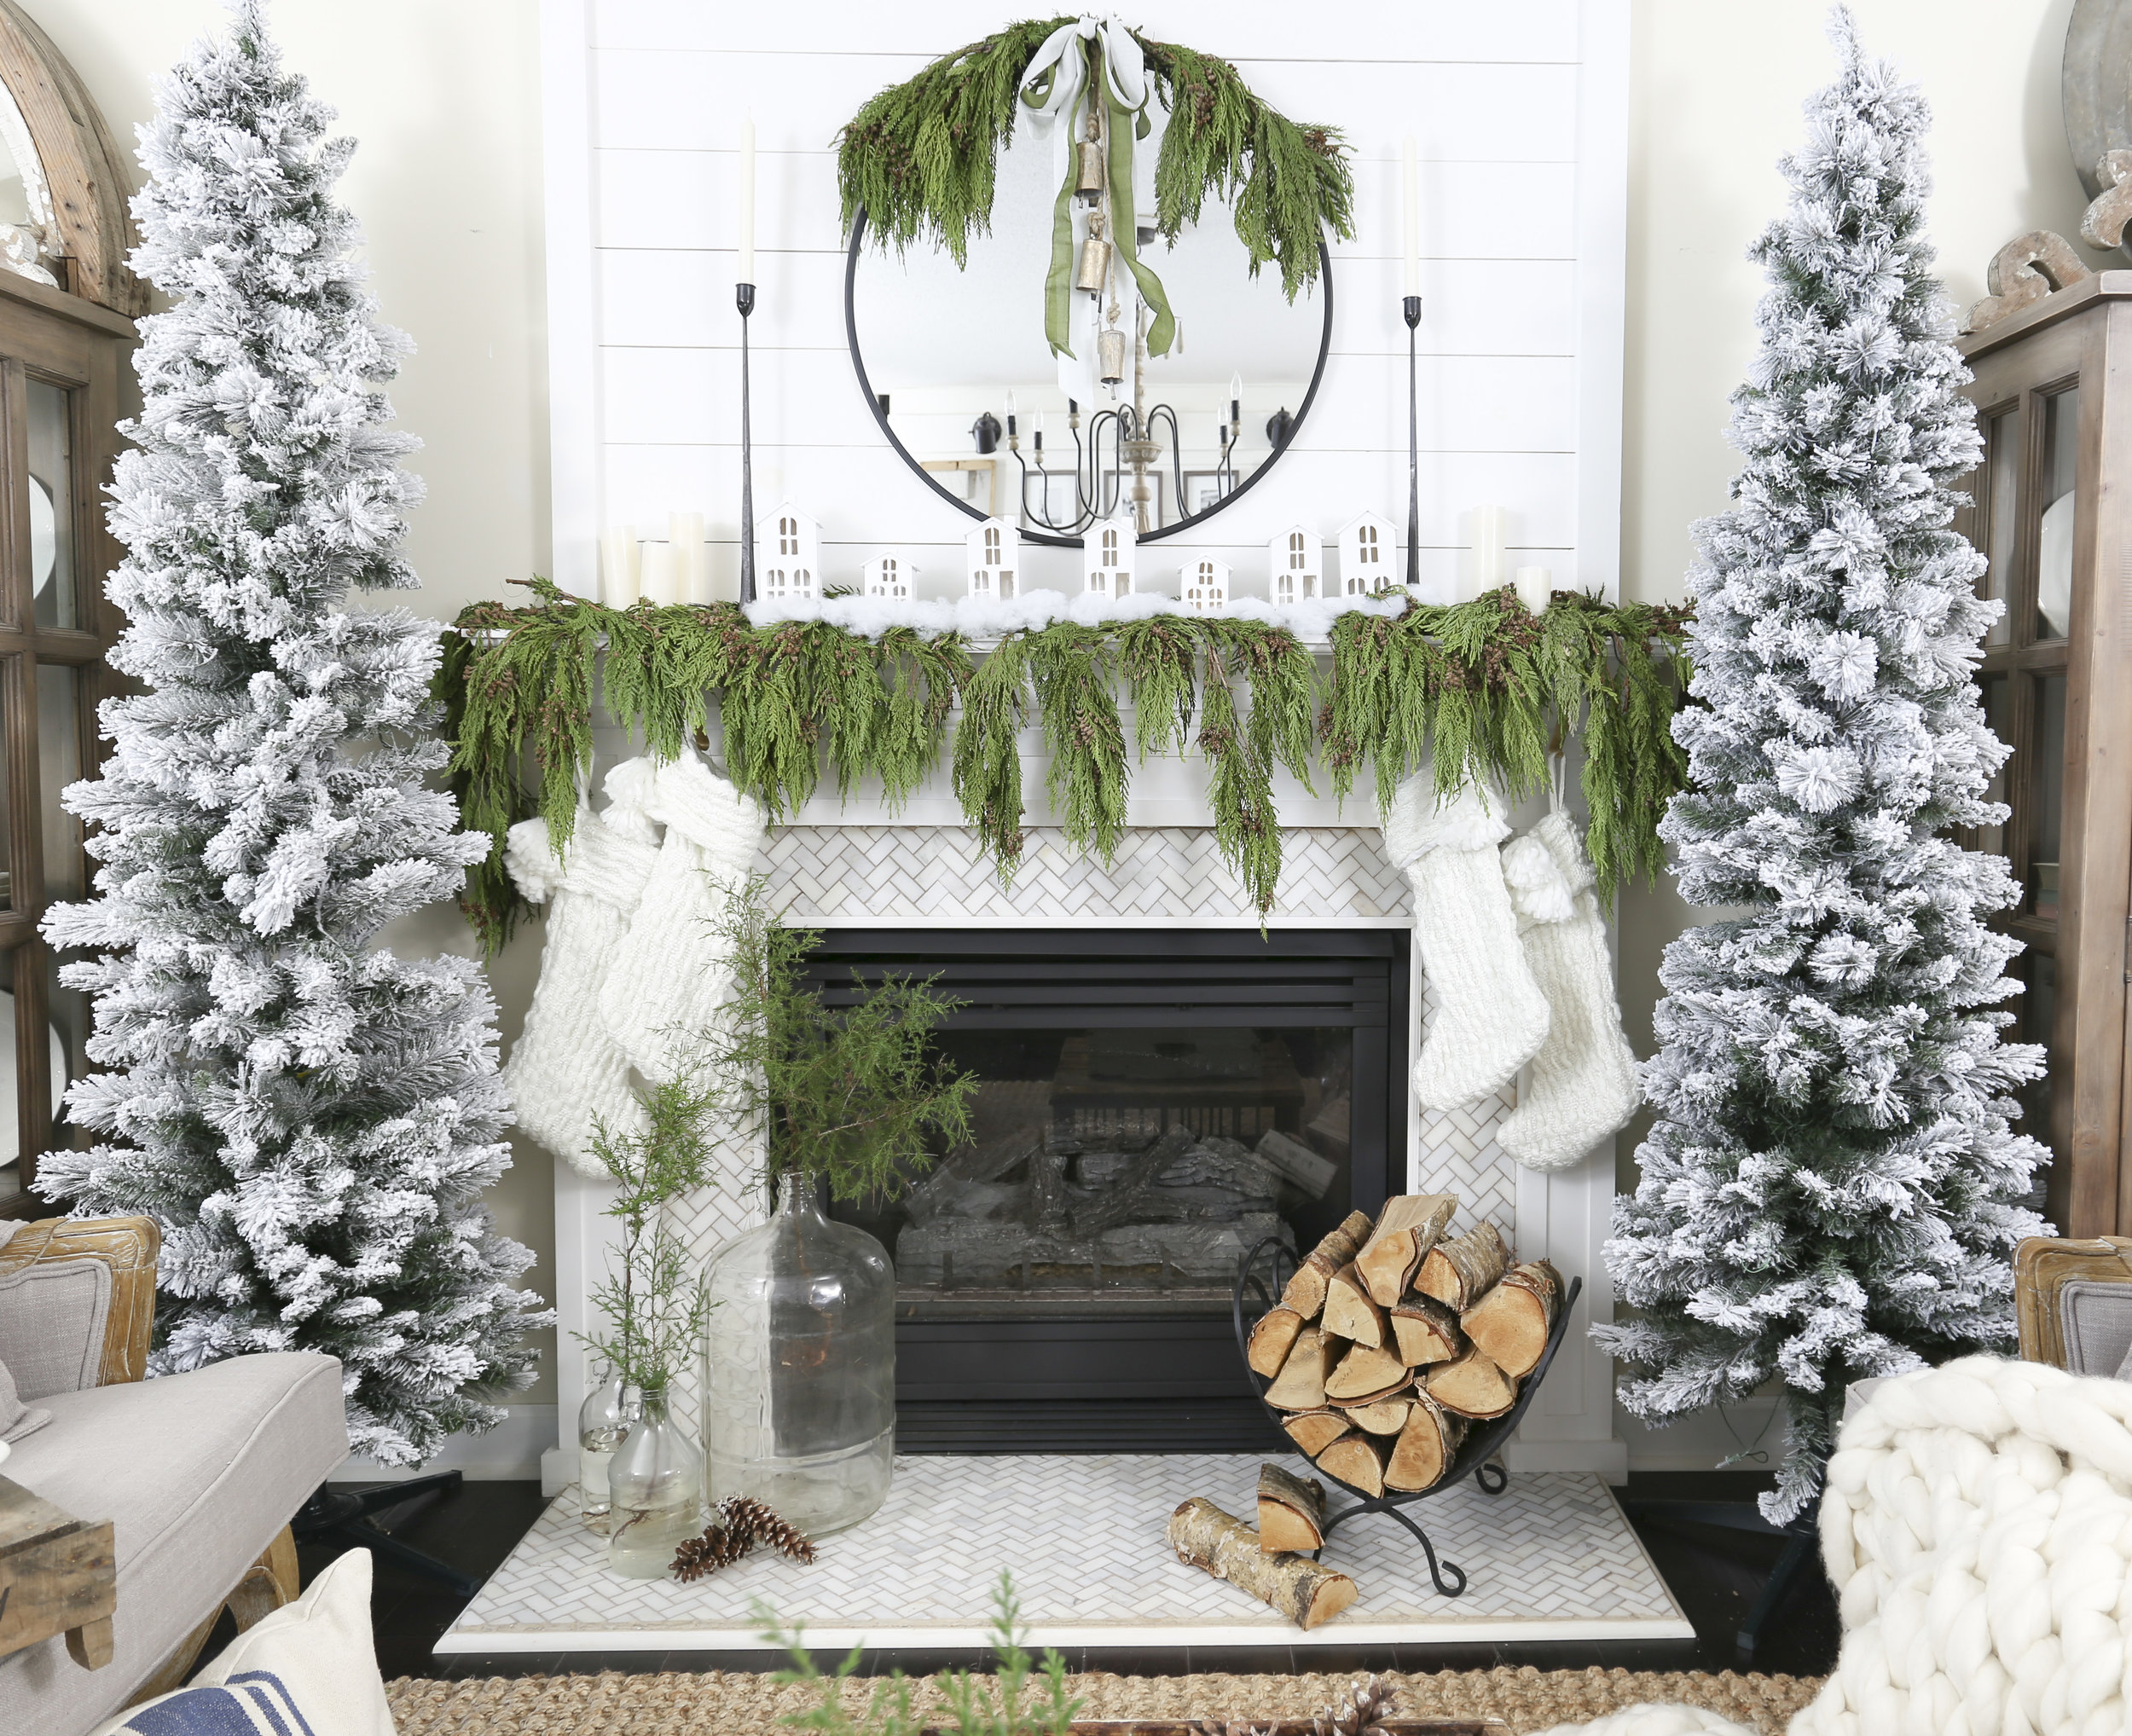 Christmas 2017 Home Tour: Deck The Blogs- Living Room Fireplace Mantel Decor with Flocked Trees and White House Village- Plum Pretty Decor & Design's Christmas Home Tour